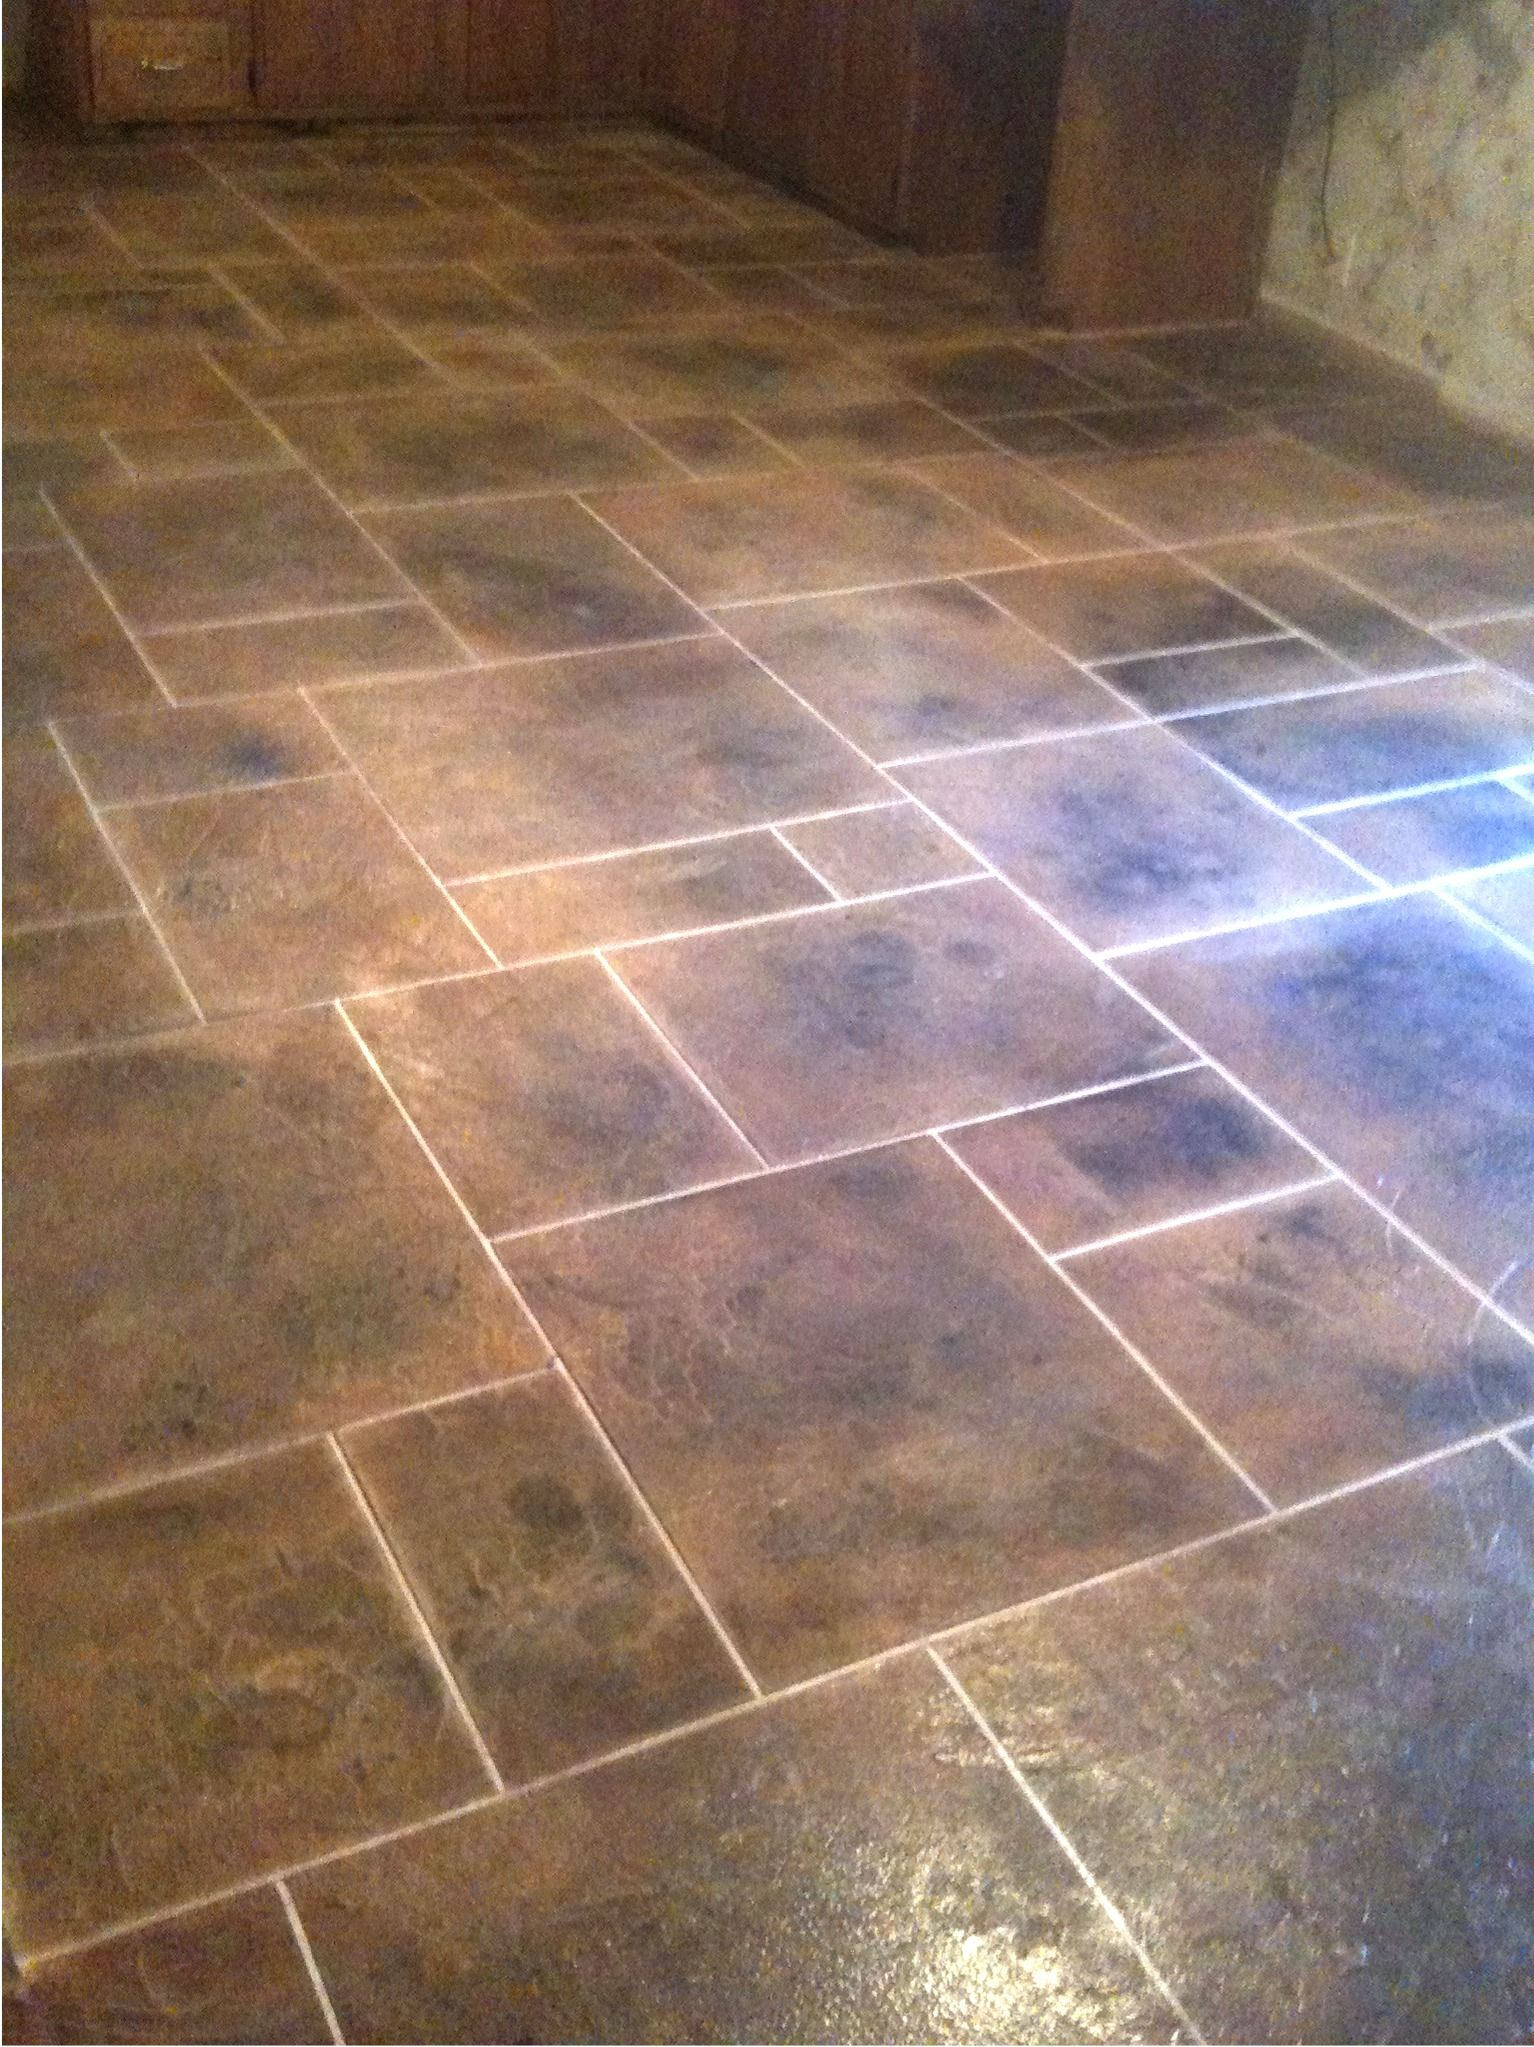 Kitchen floor tile patterns concrete overlay random for Flor flooring